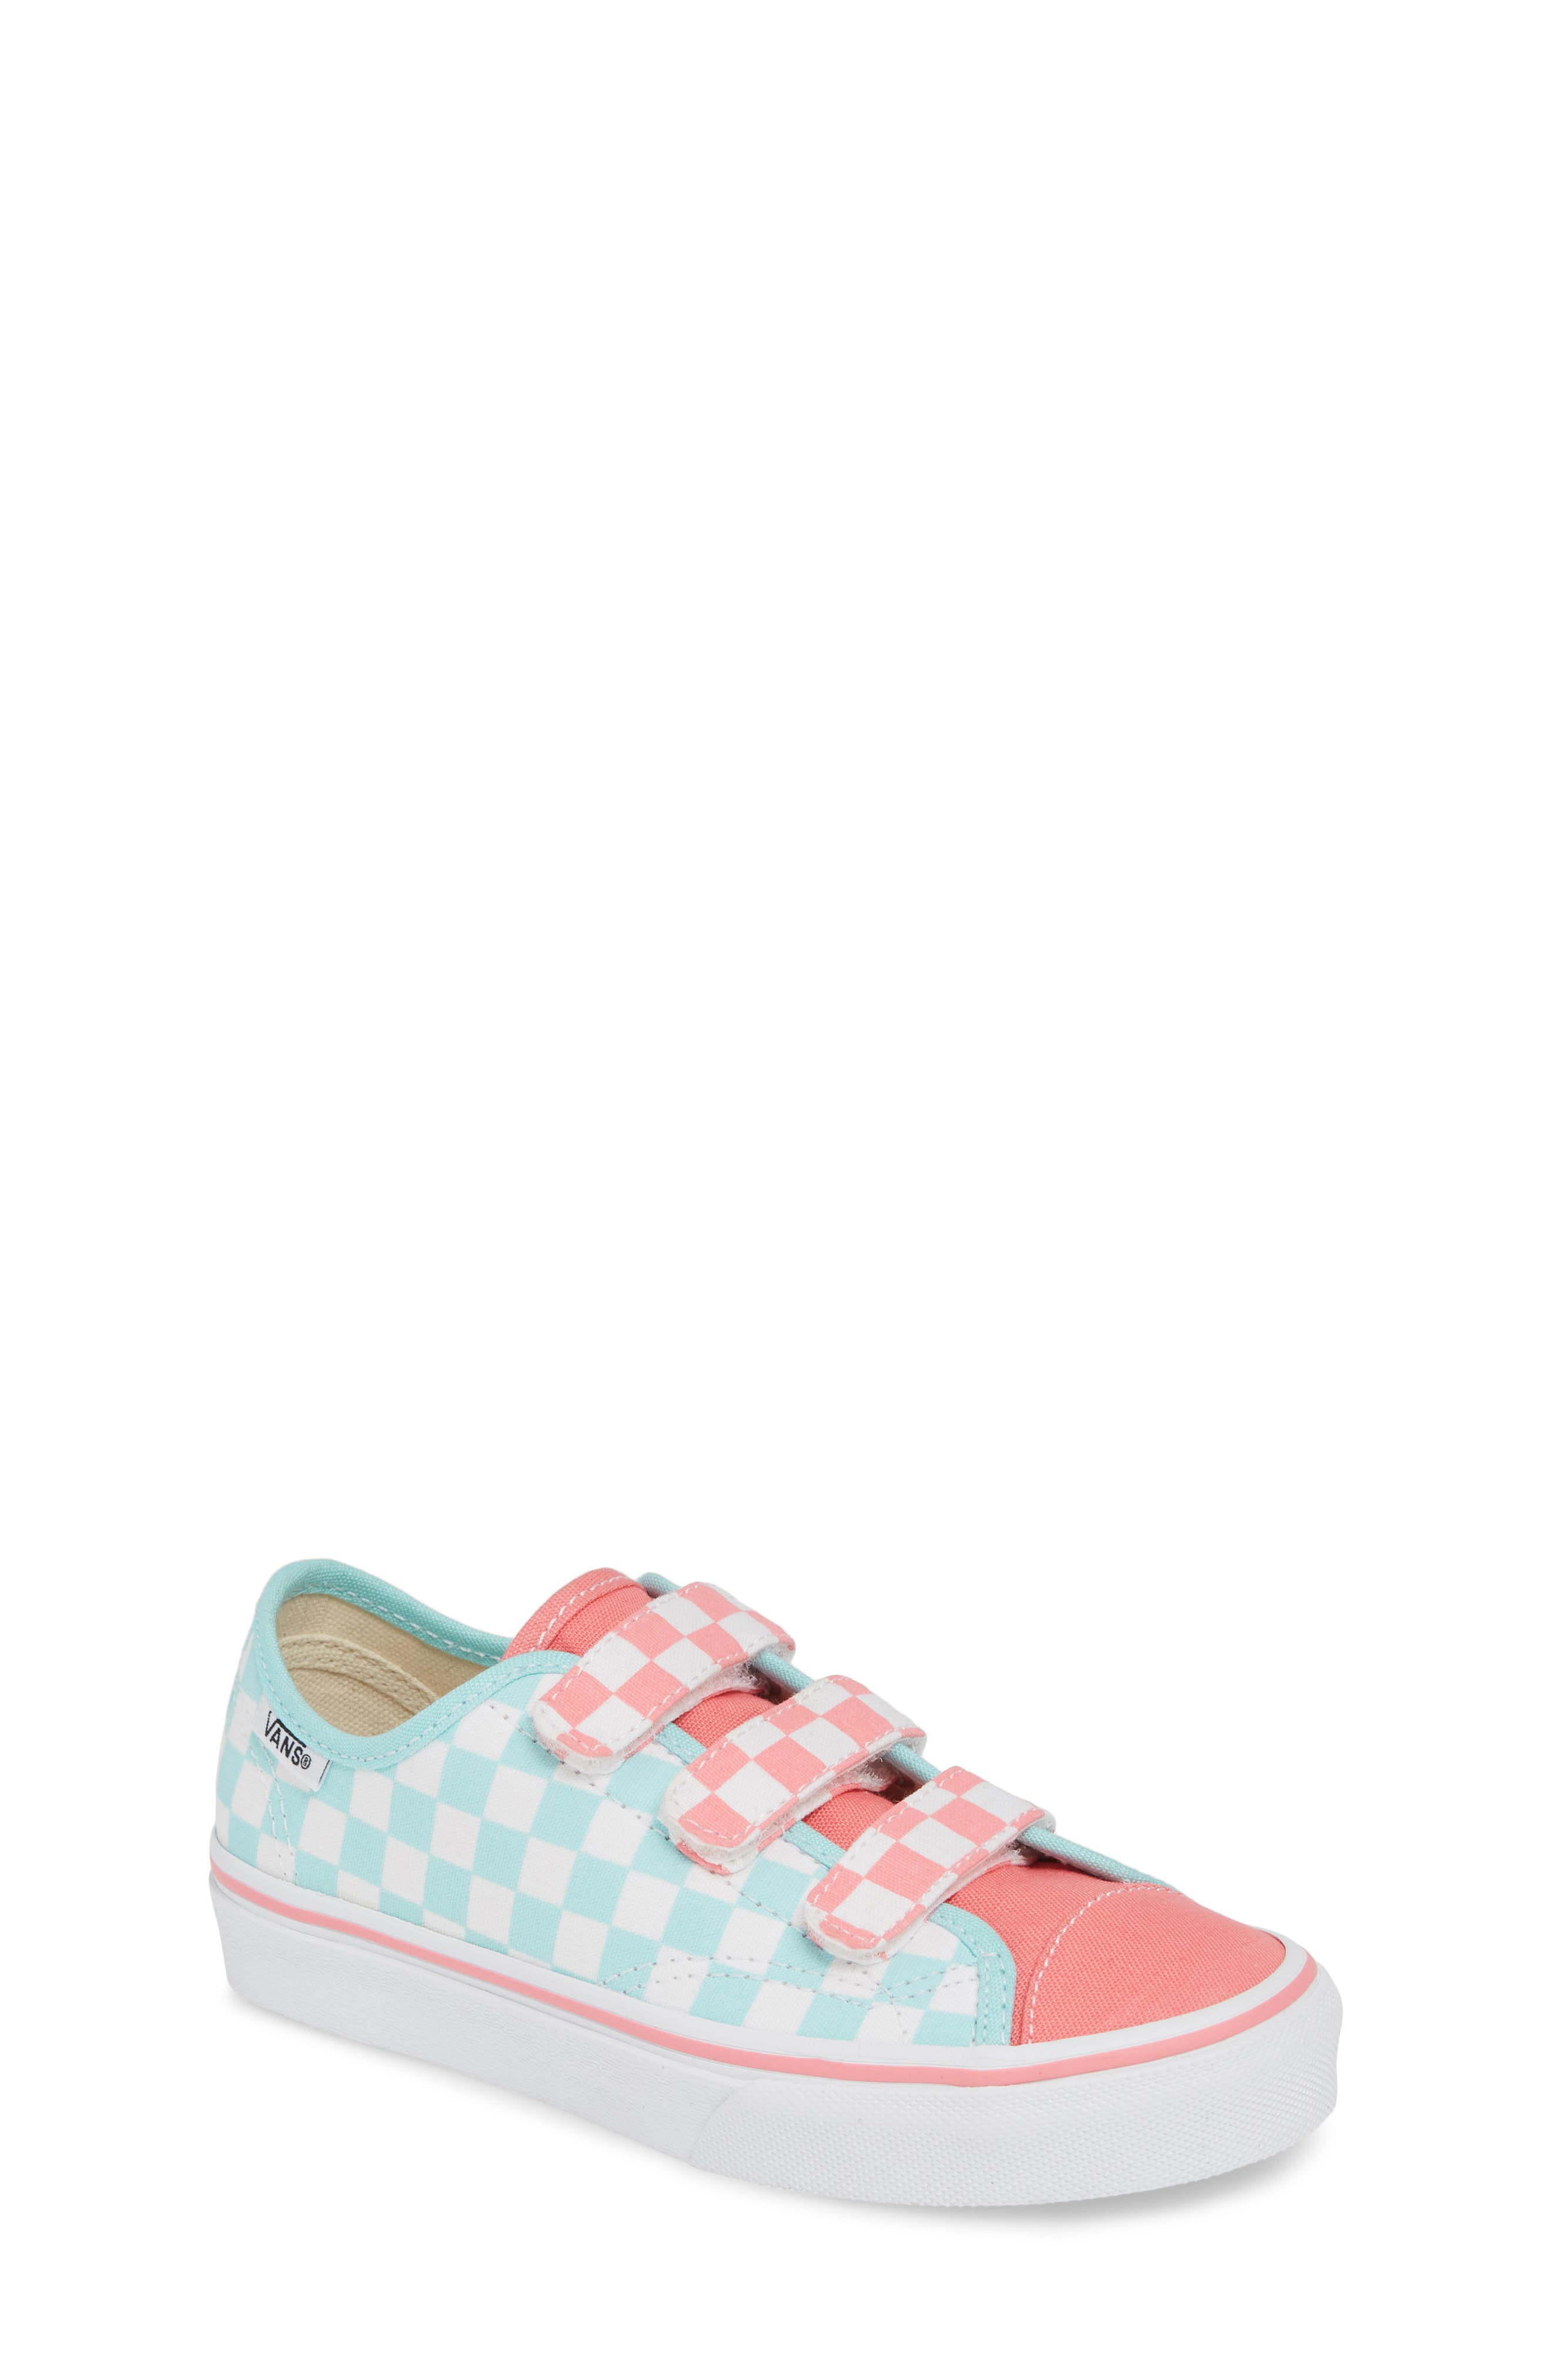 VANS Style 23V Sneaker, Main, color, BLUE TINT/ STRAWBERRY PINK